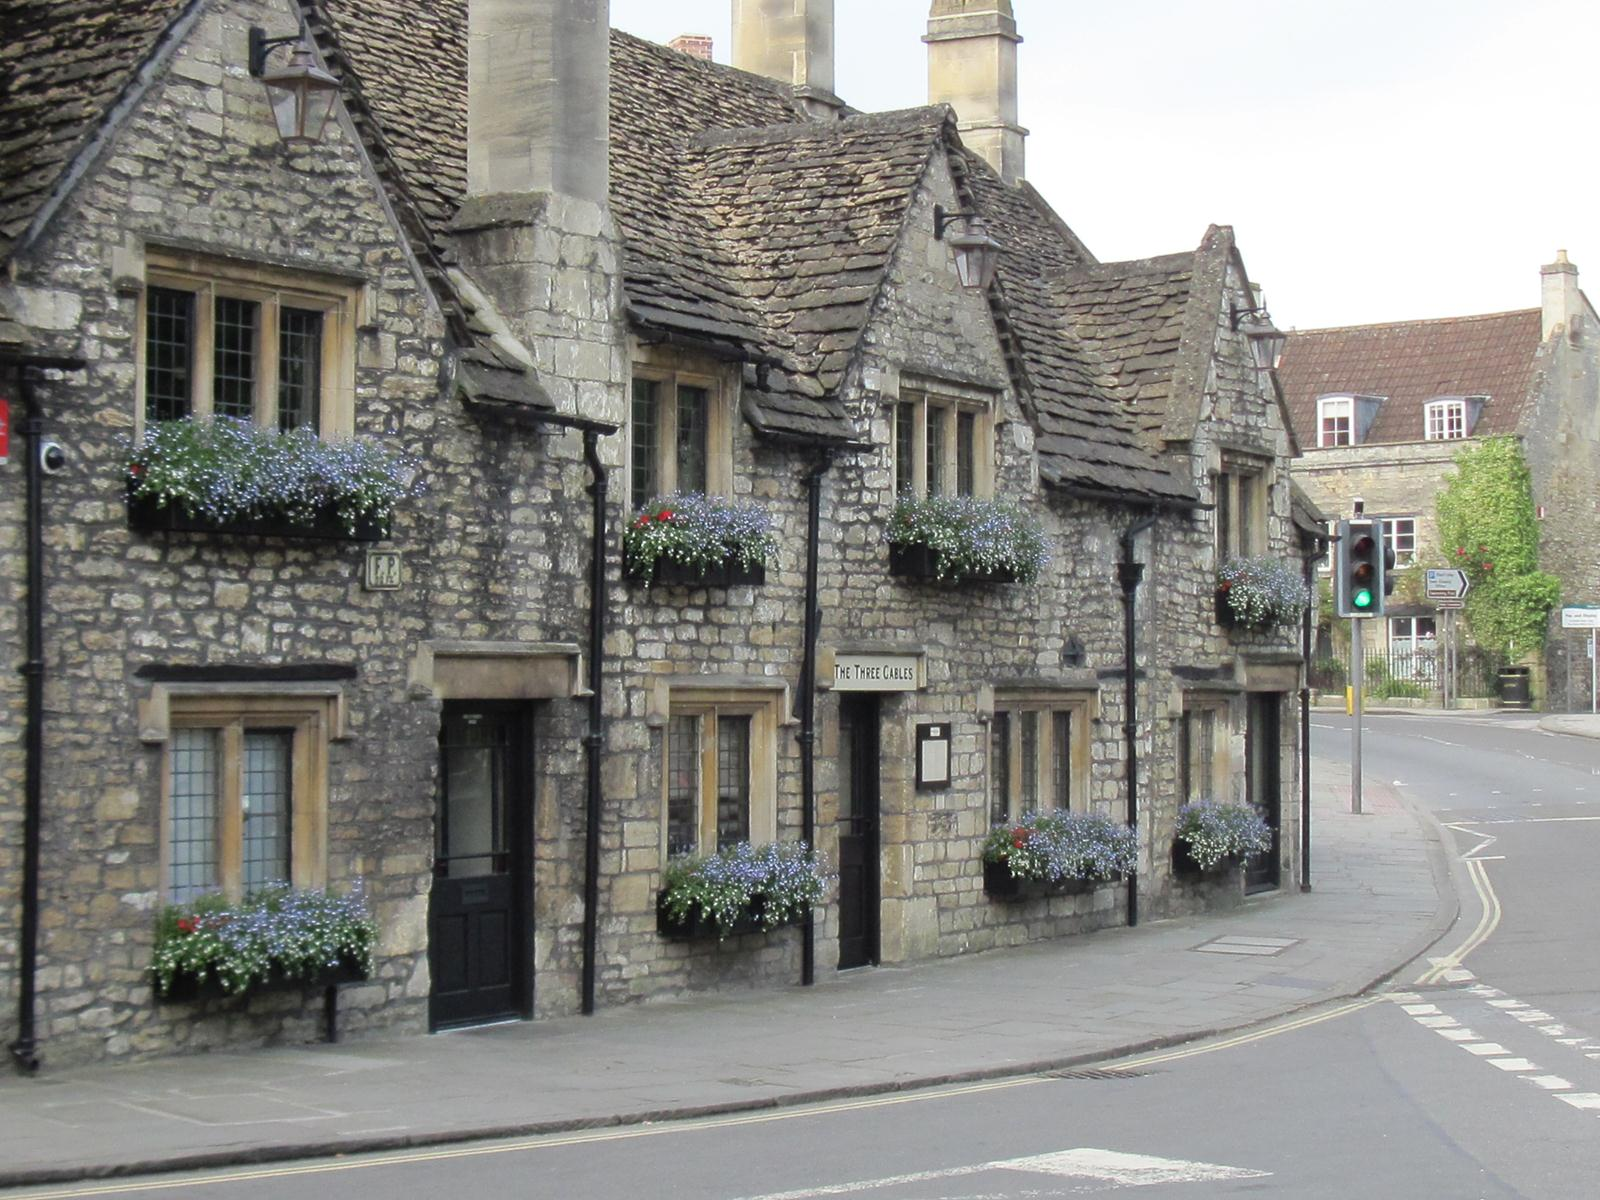 We are less than two miles from the beautiful Saxon town of Bradford-on-Avon